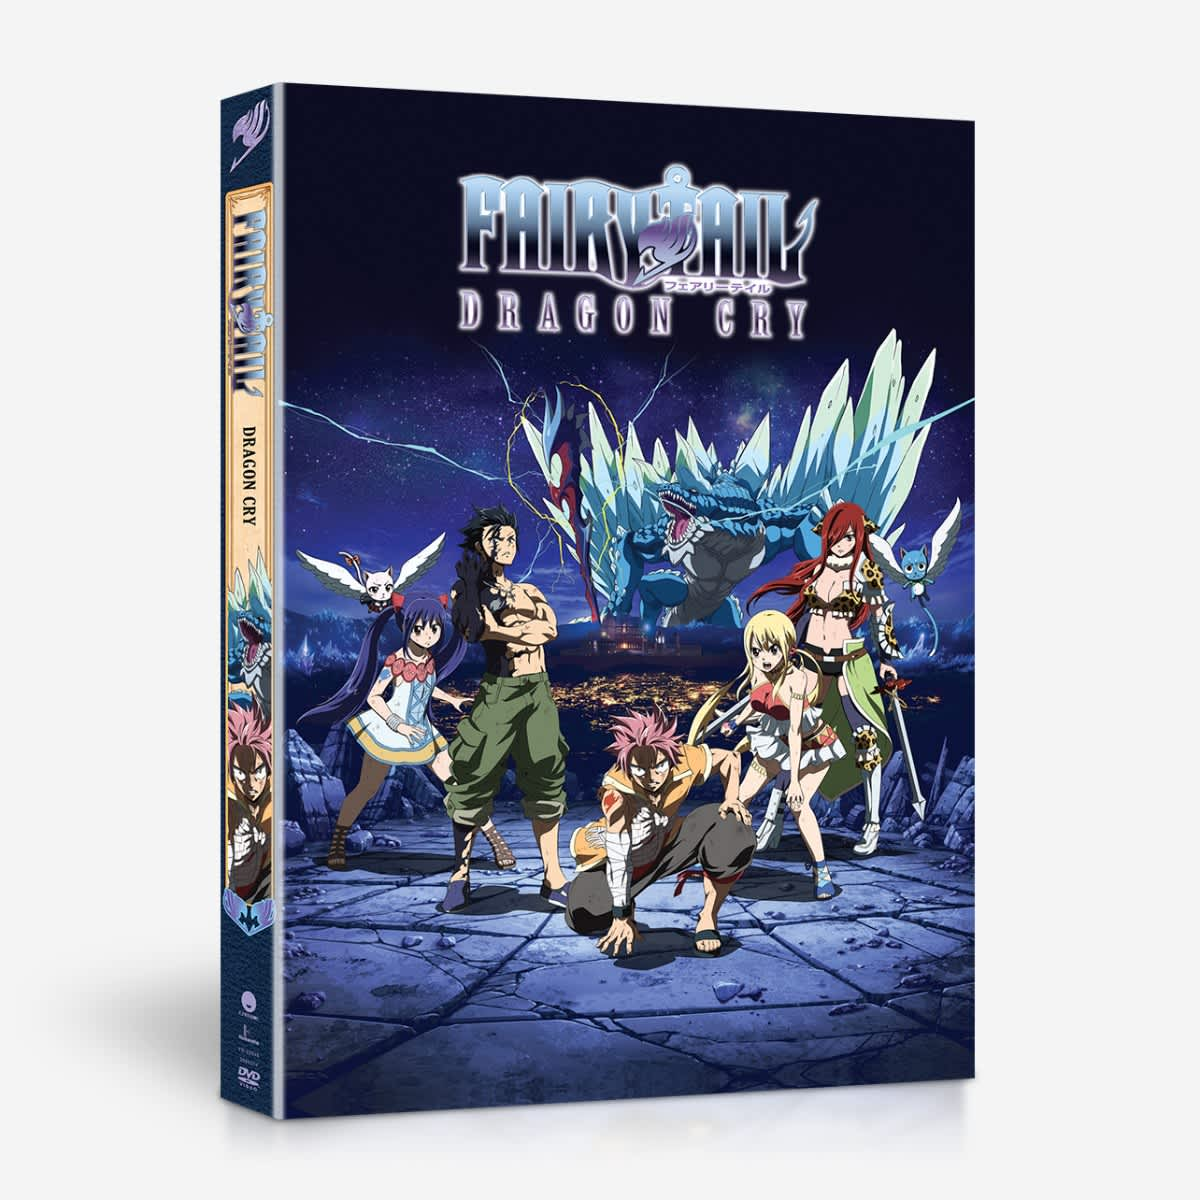 Fairy Tail Dragon Cry DVD